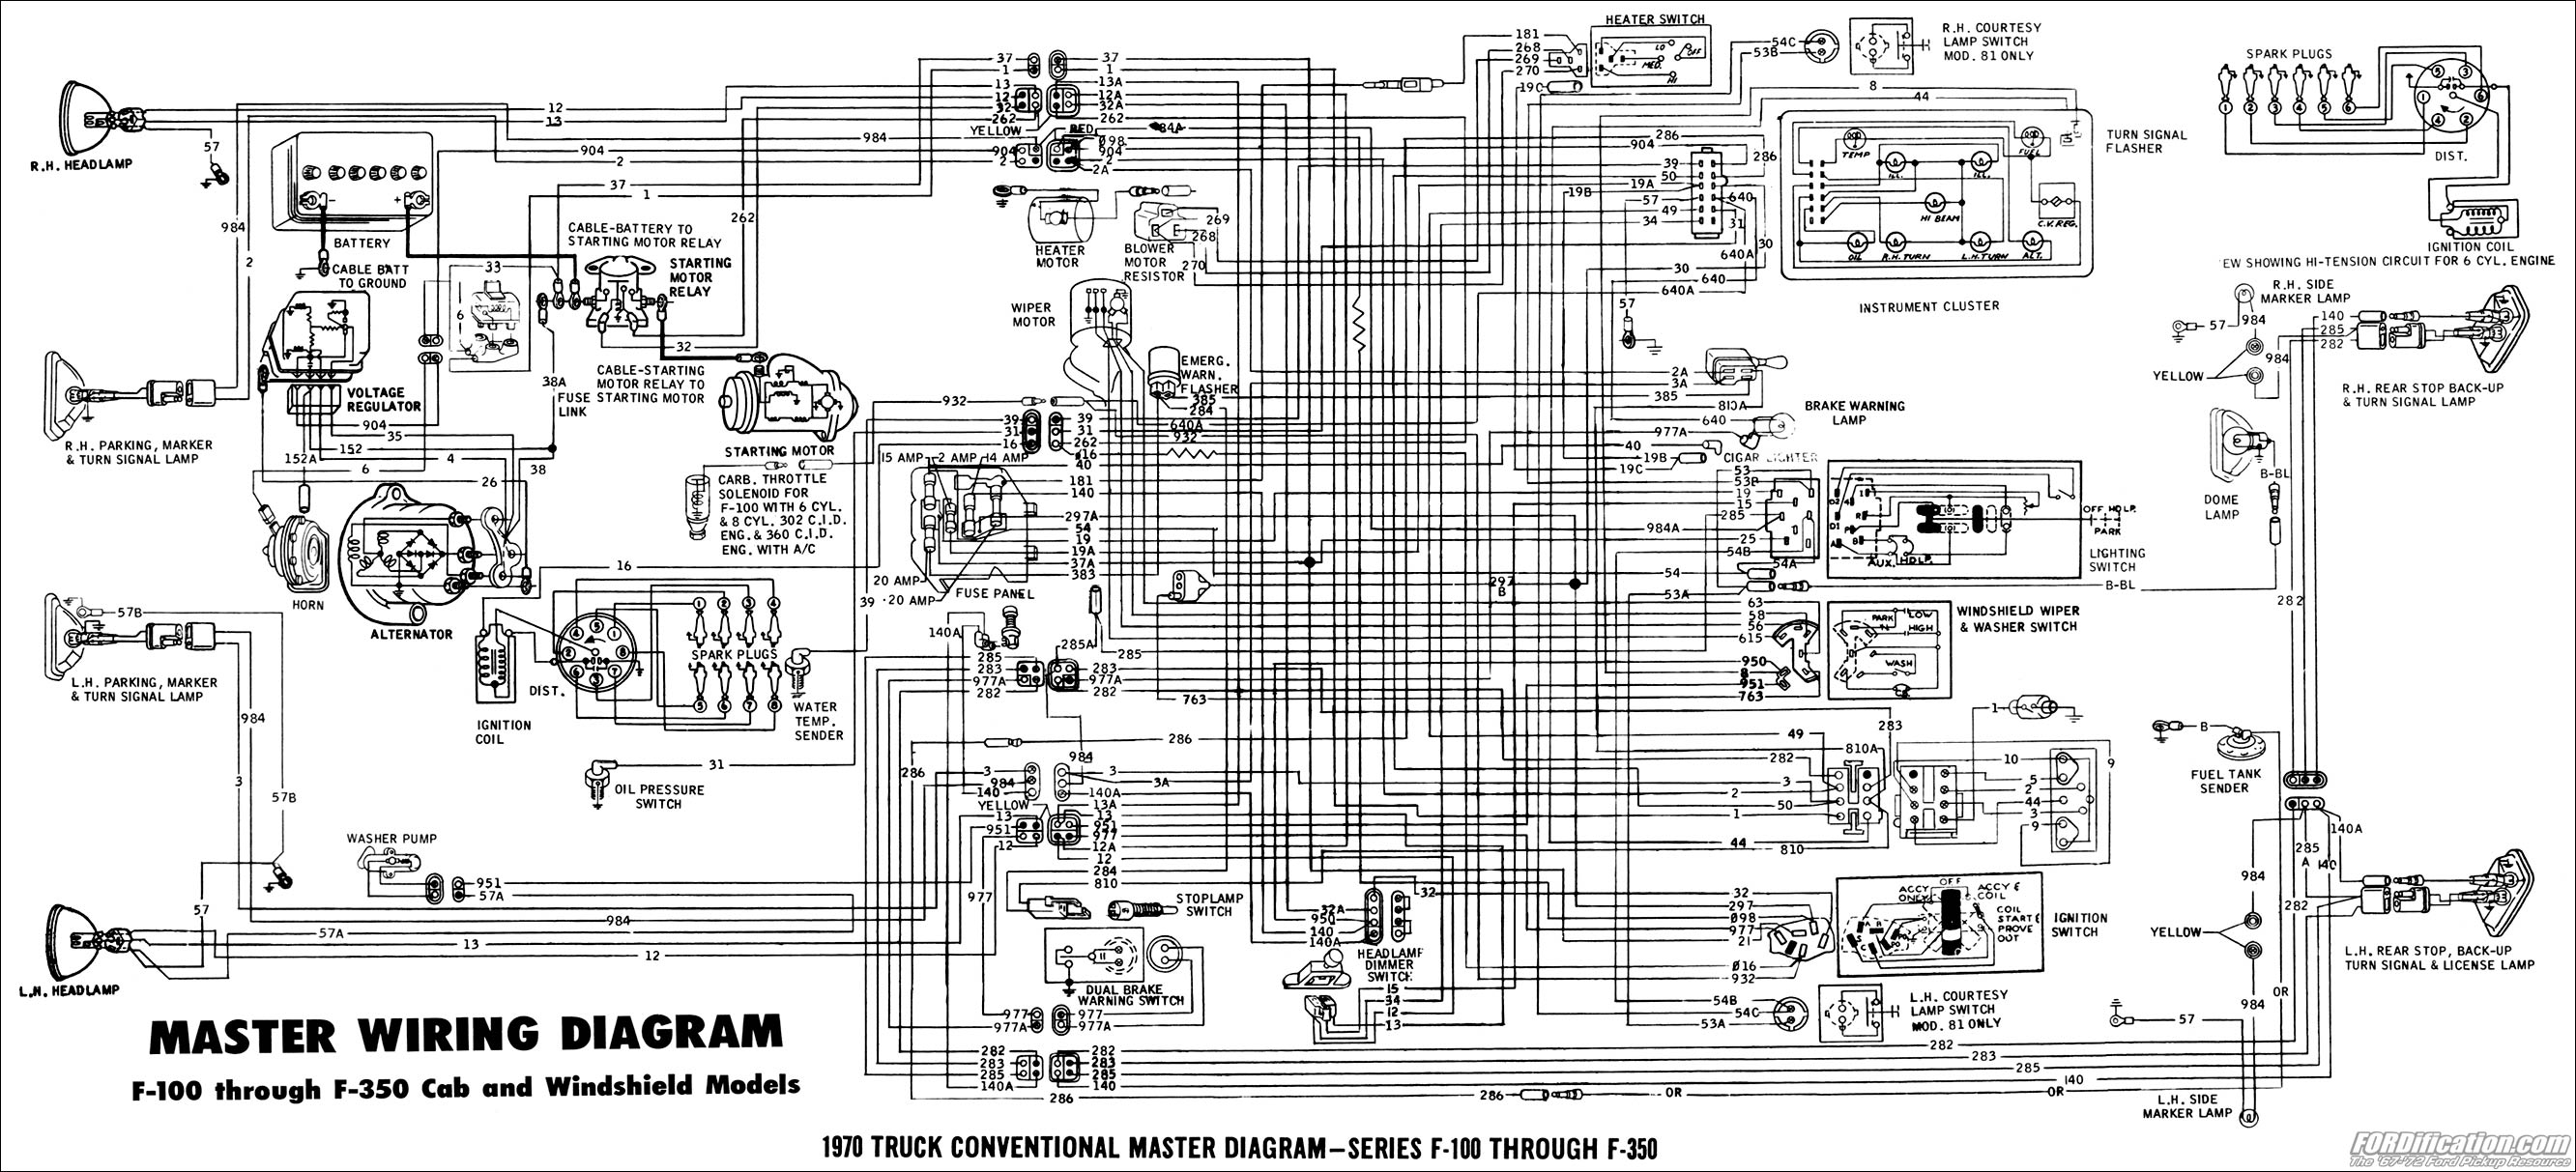 p096 remote start wiring turcolea com s2000 wiring diagram at aneh.co